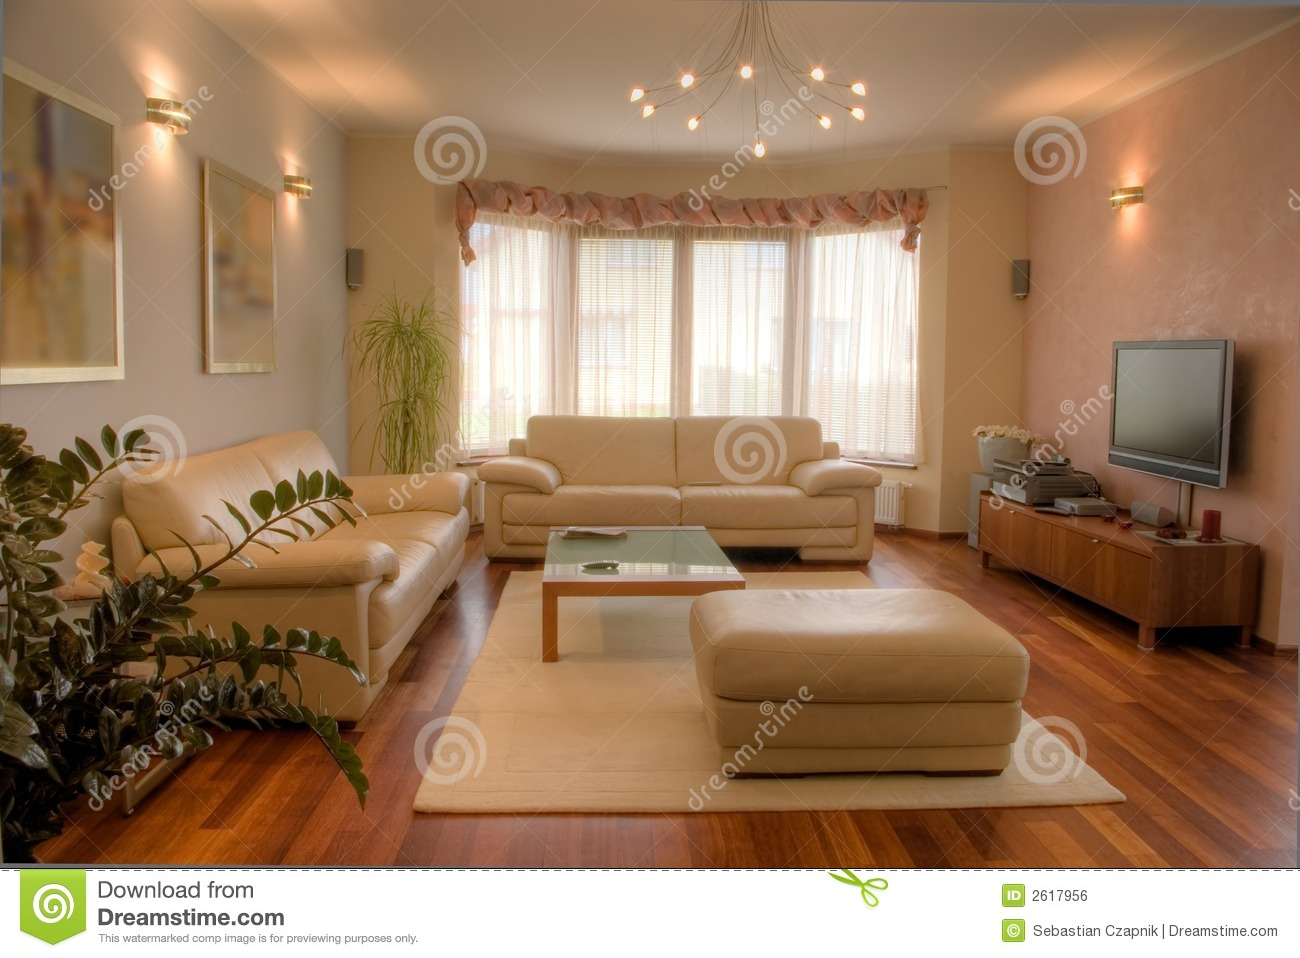 Exceptional Home Interiors Photo Gallery Modern Home Interior Royalty Free Stock Image  Image